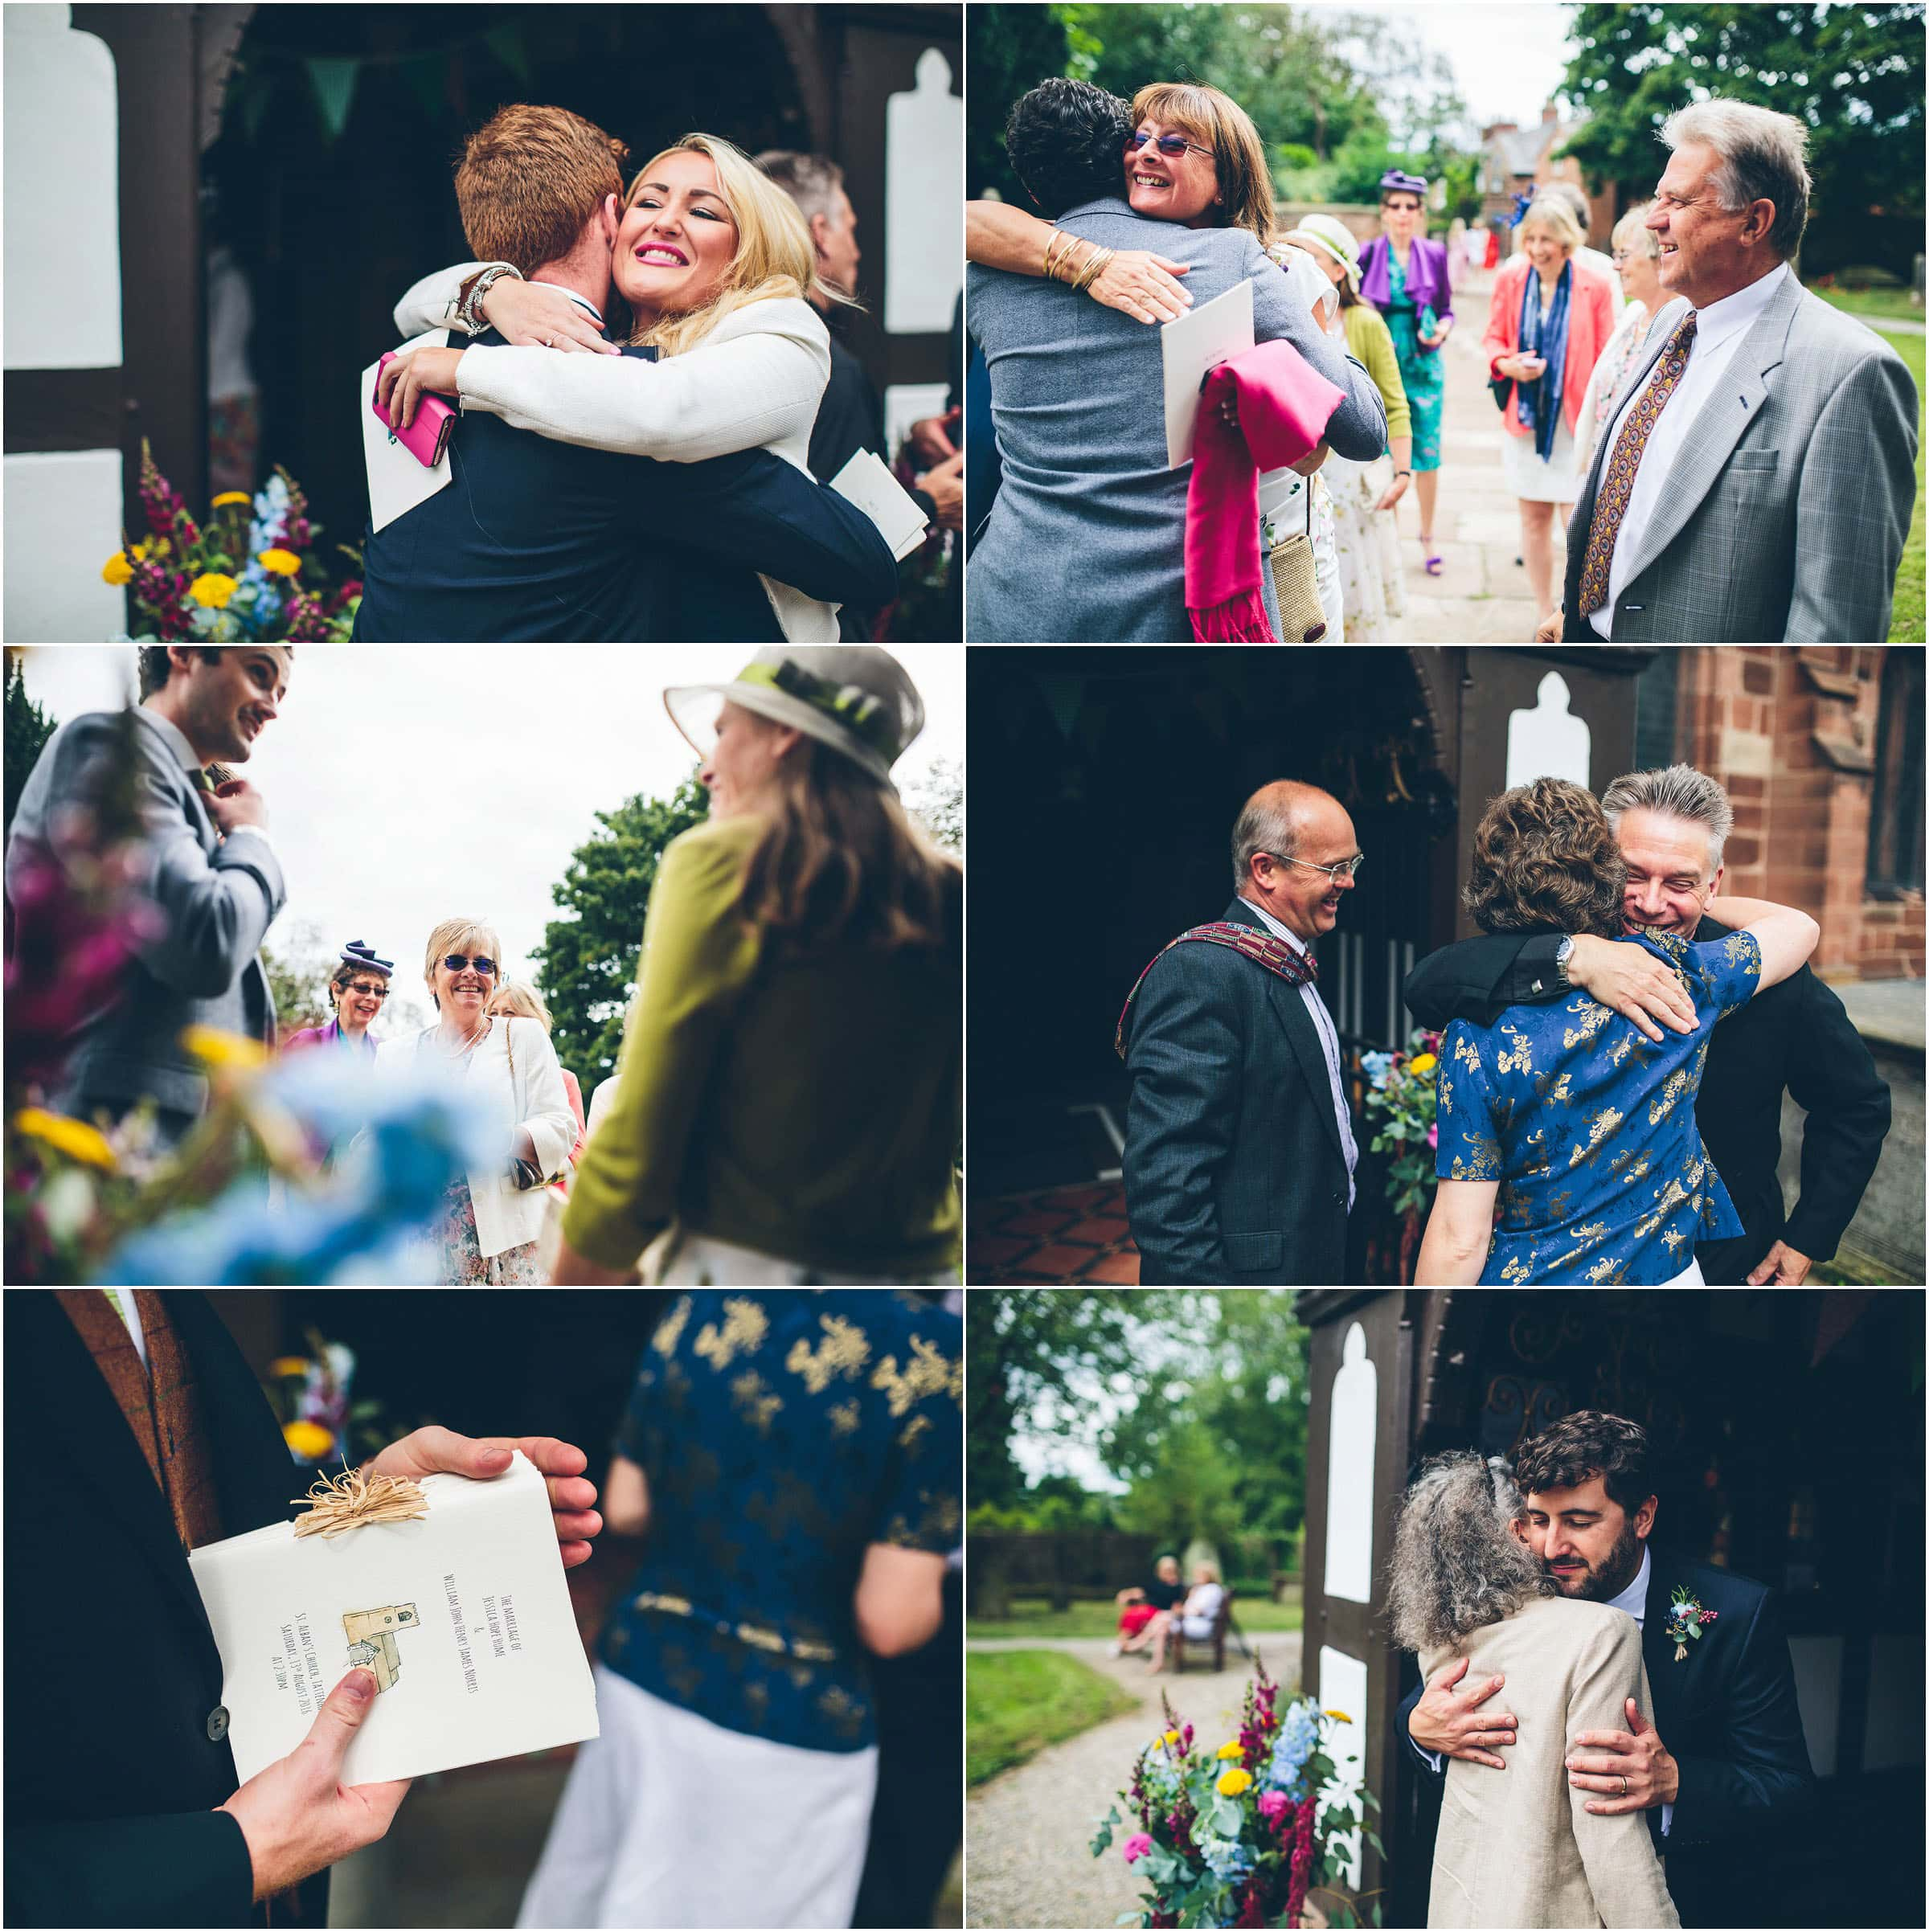 Harthill_Weddings_Wedding_Photography_0031